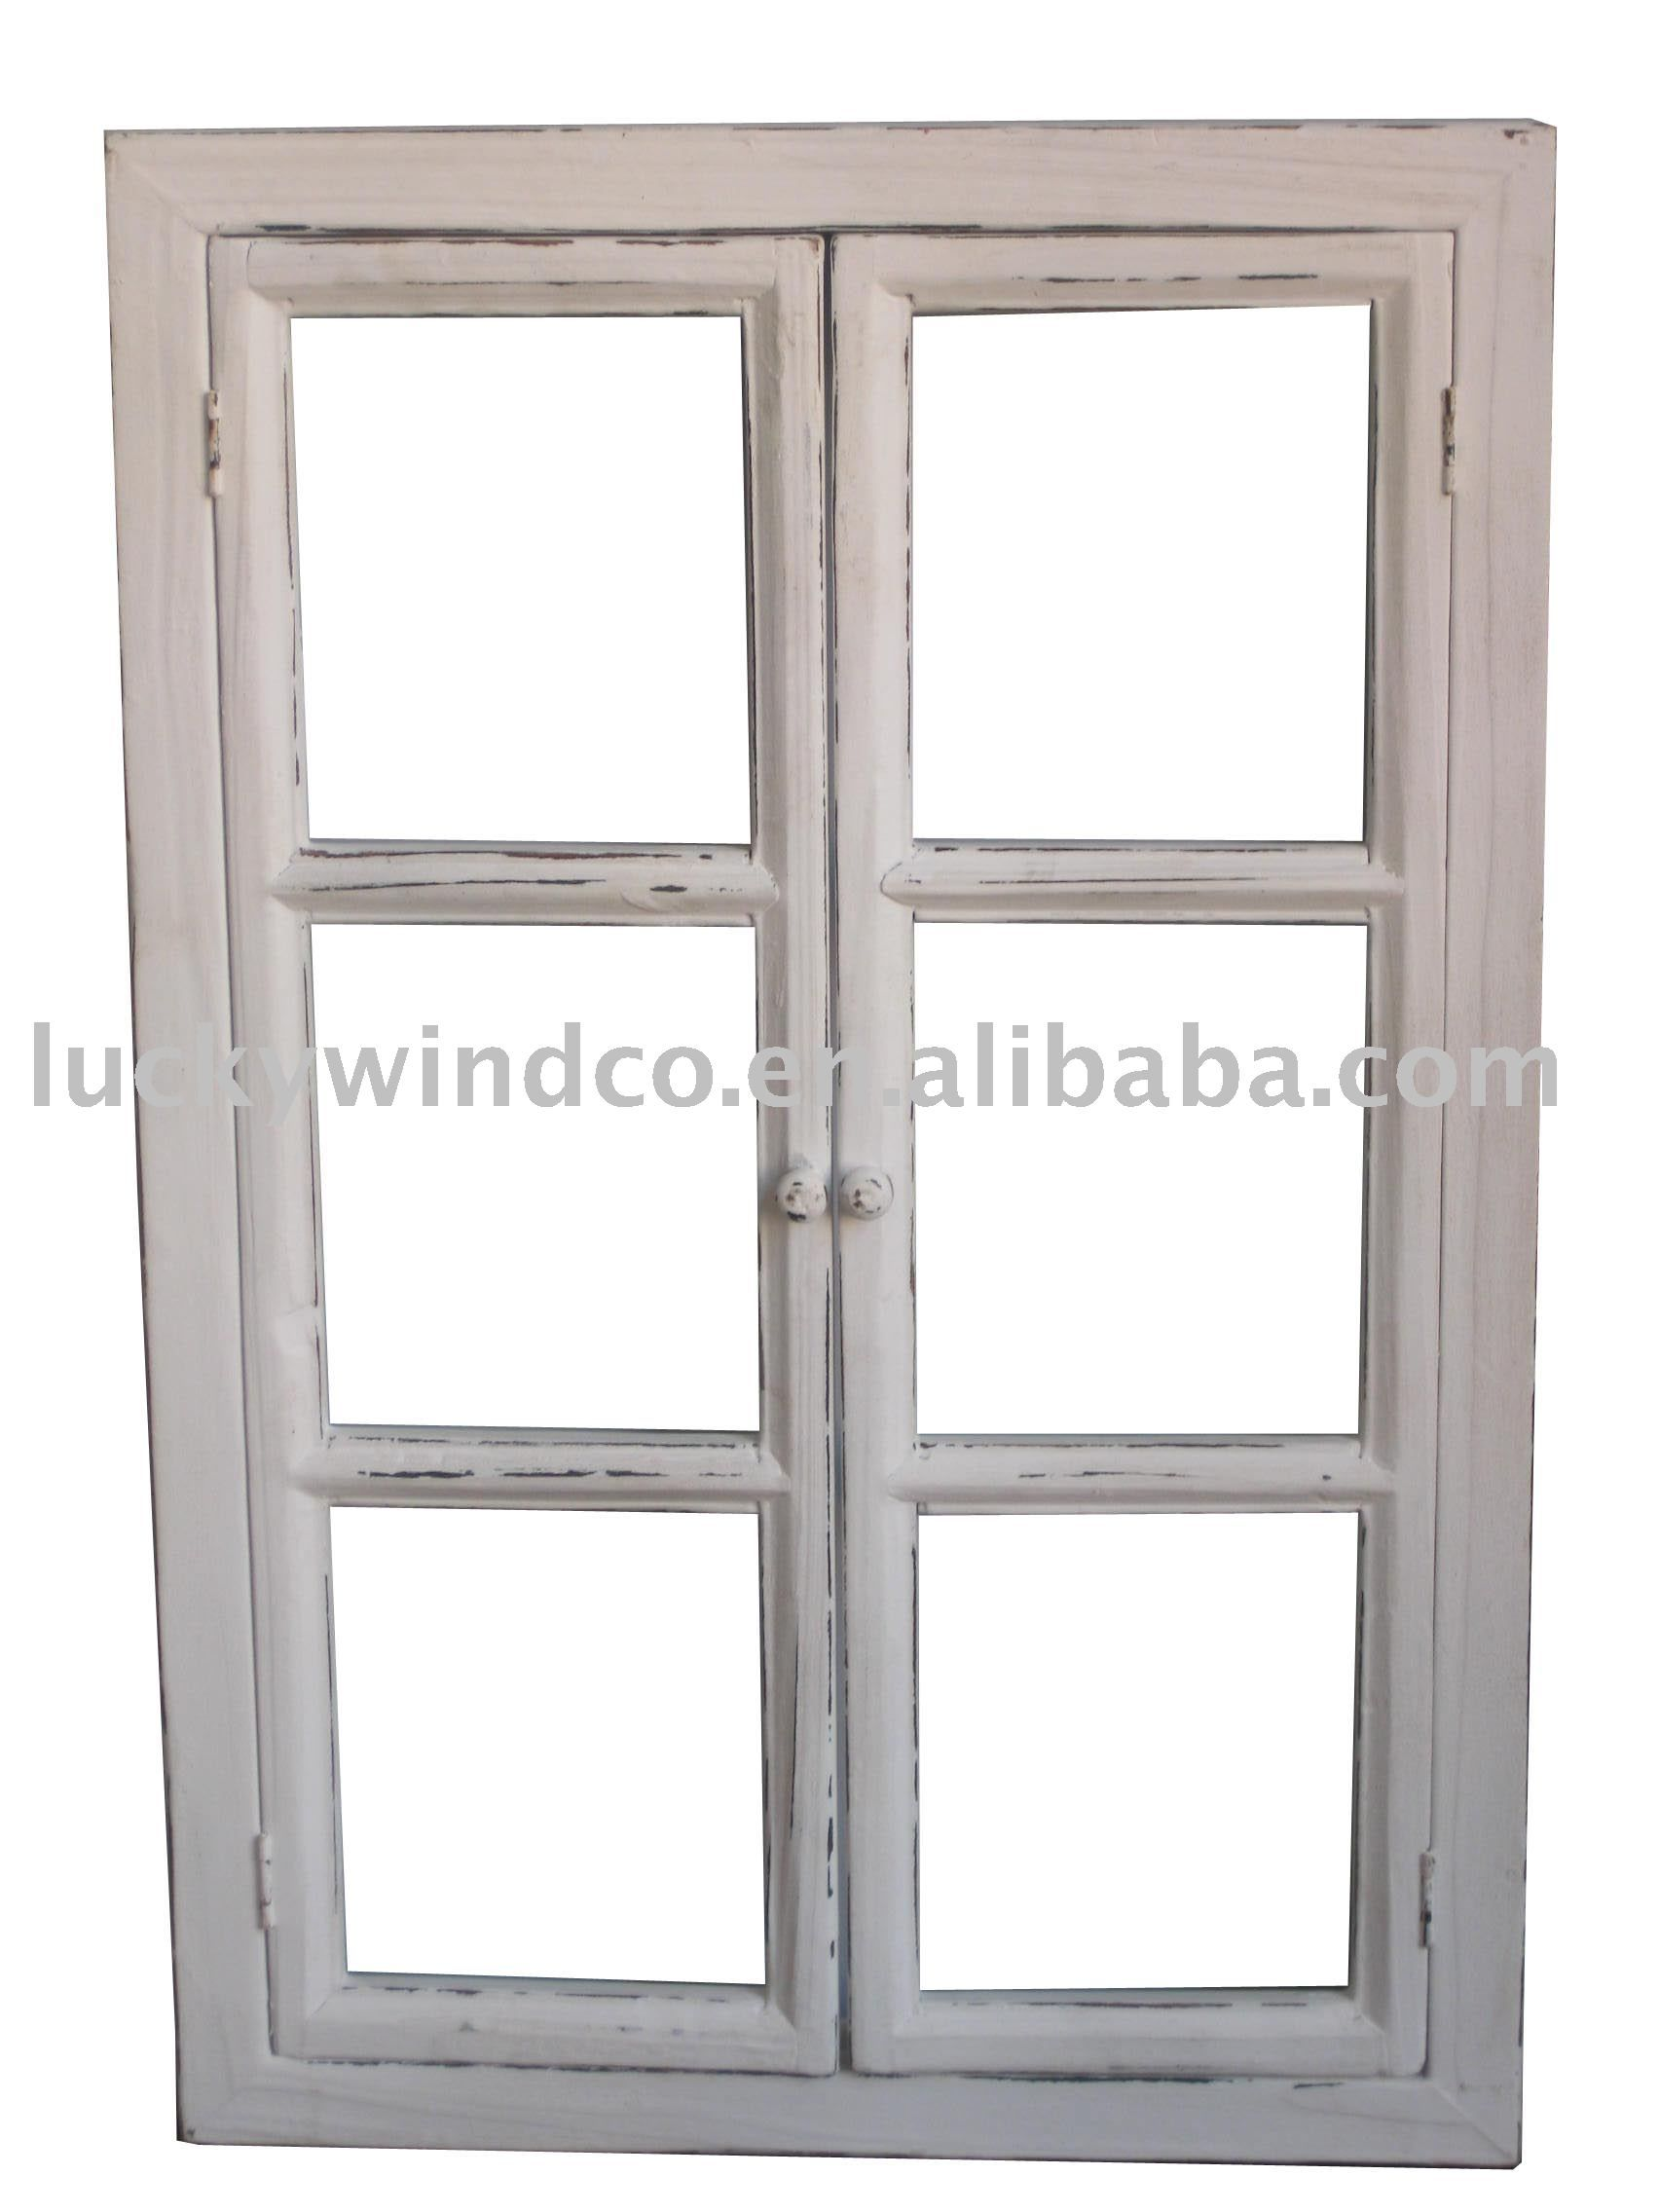 window white frame decorating ideas for kitchen cabinets - Wooden Window Frame